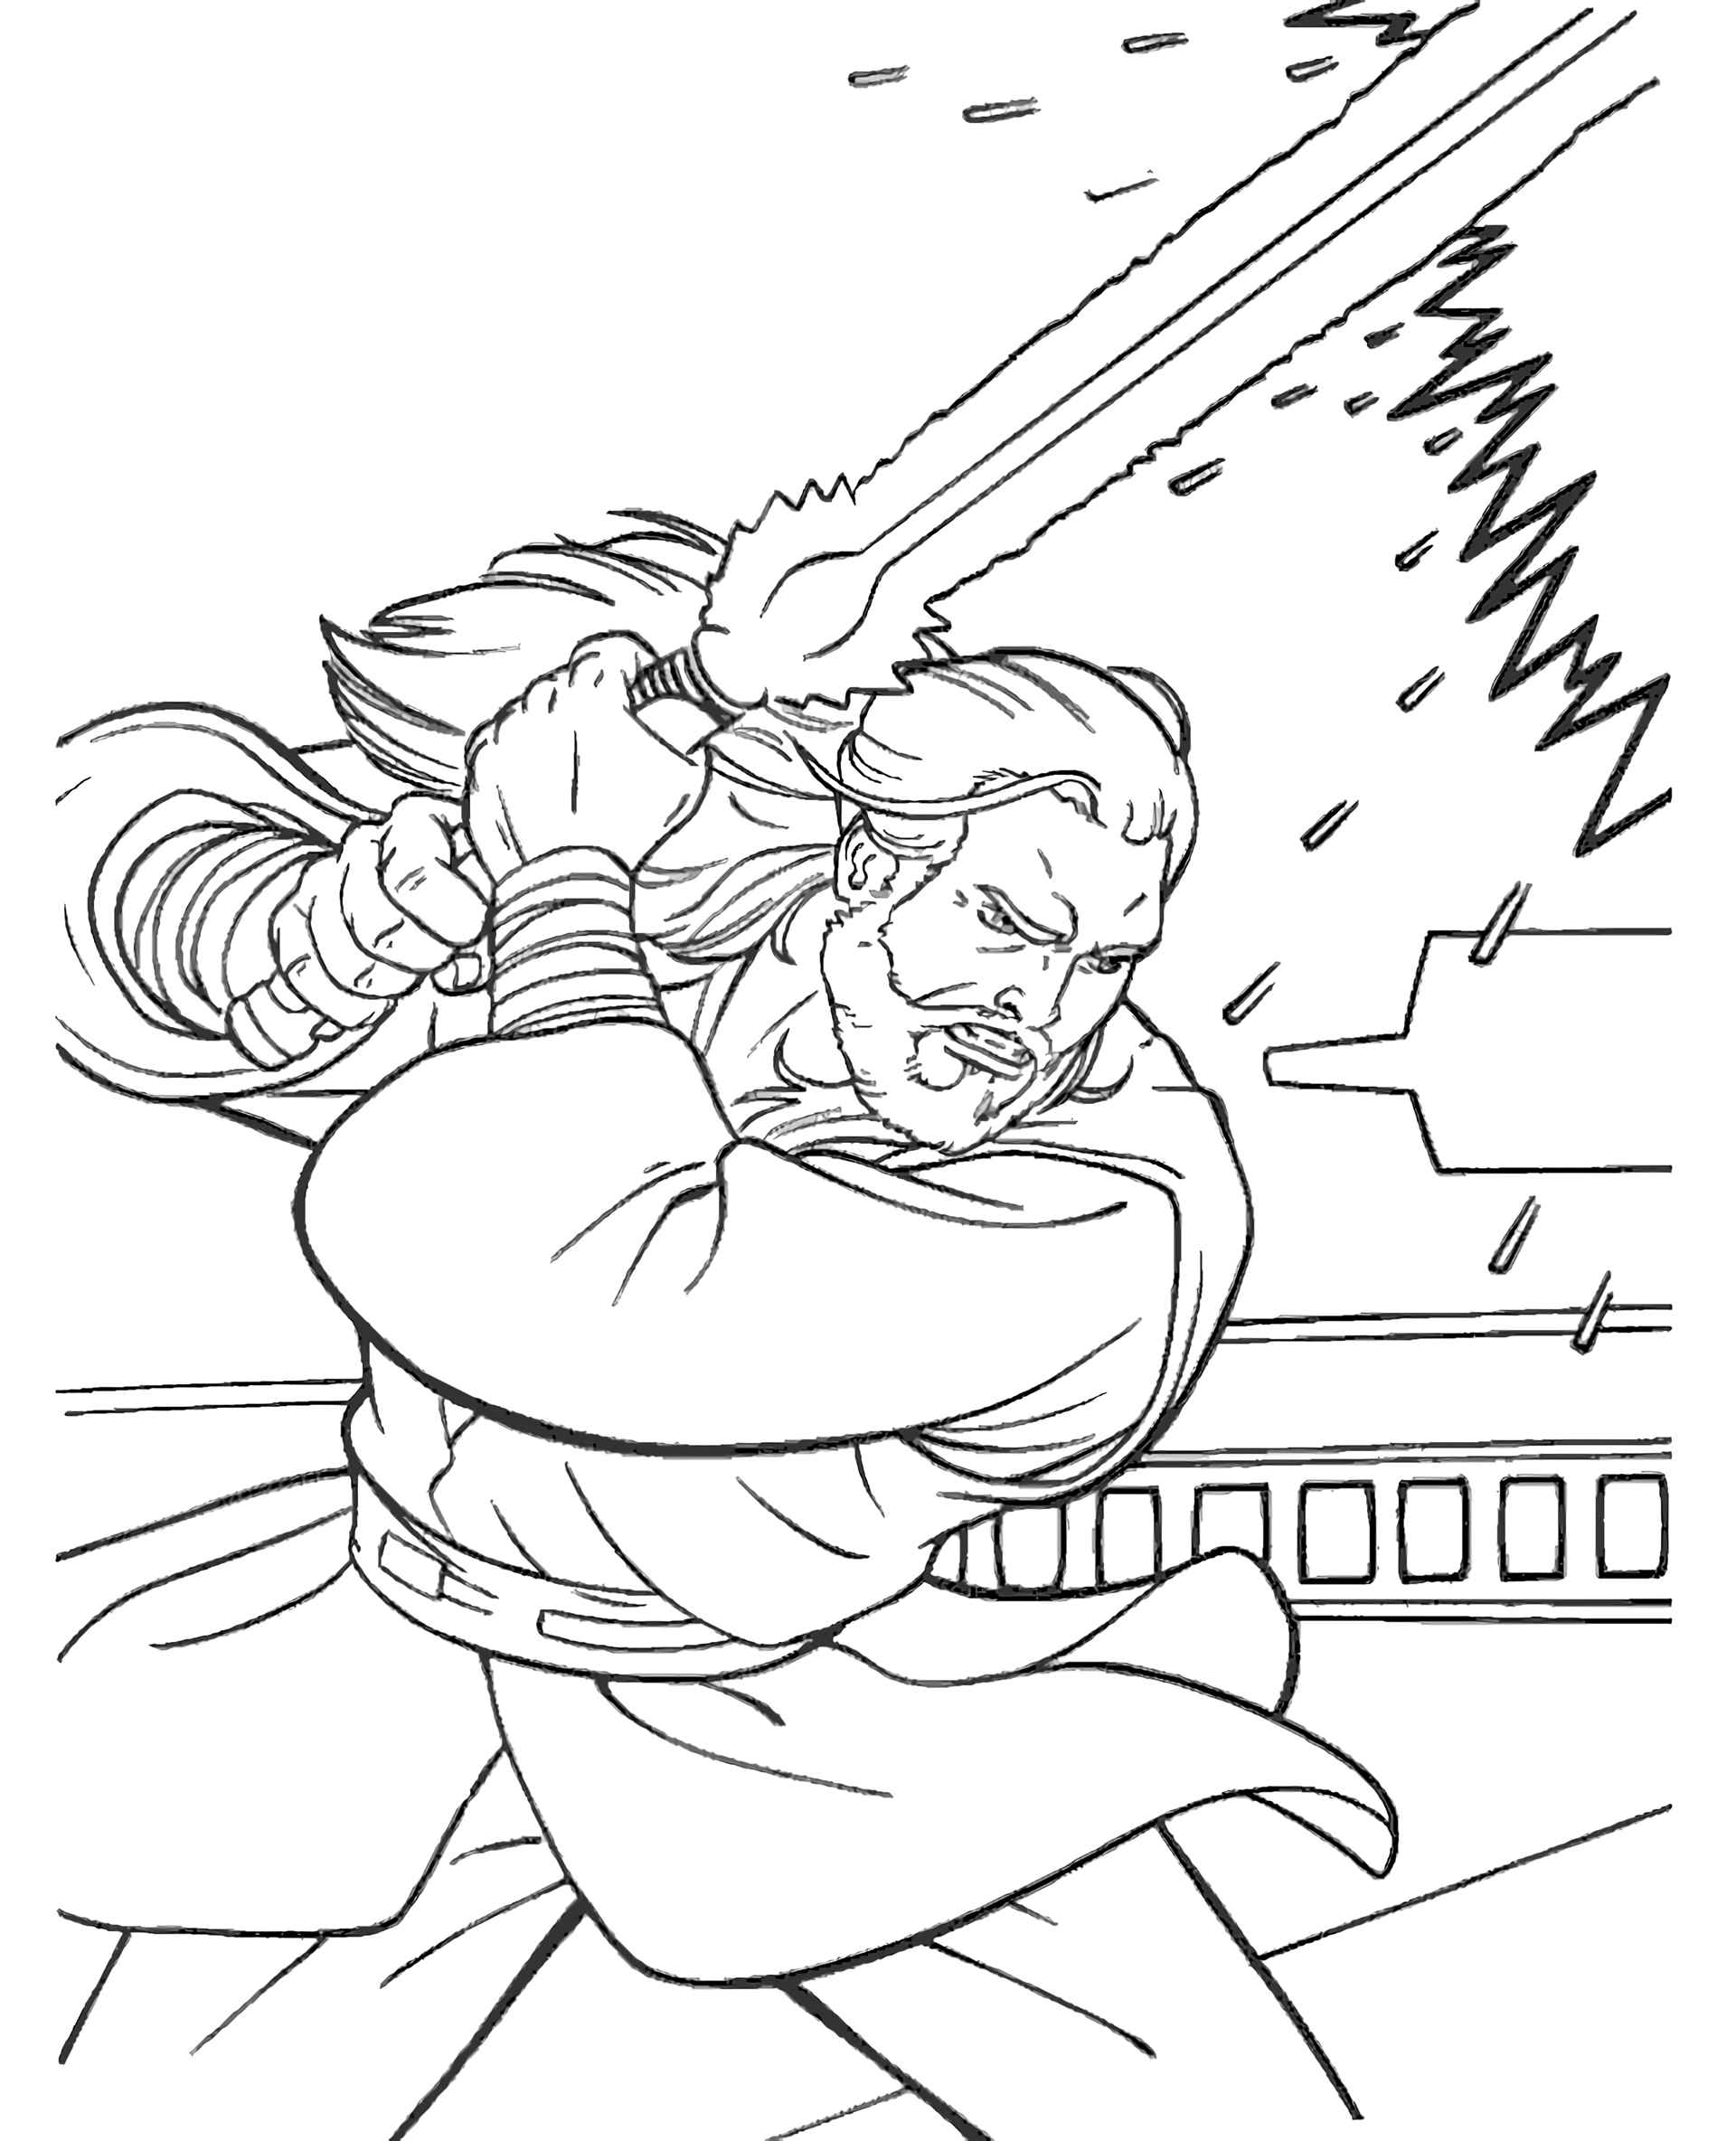 Qui Gon Jinn From Star Wars With A Jedi Sword Coloring Page